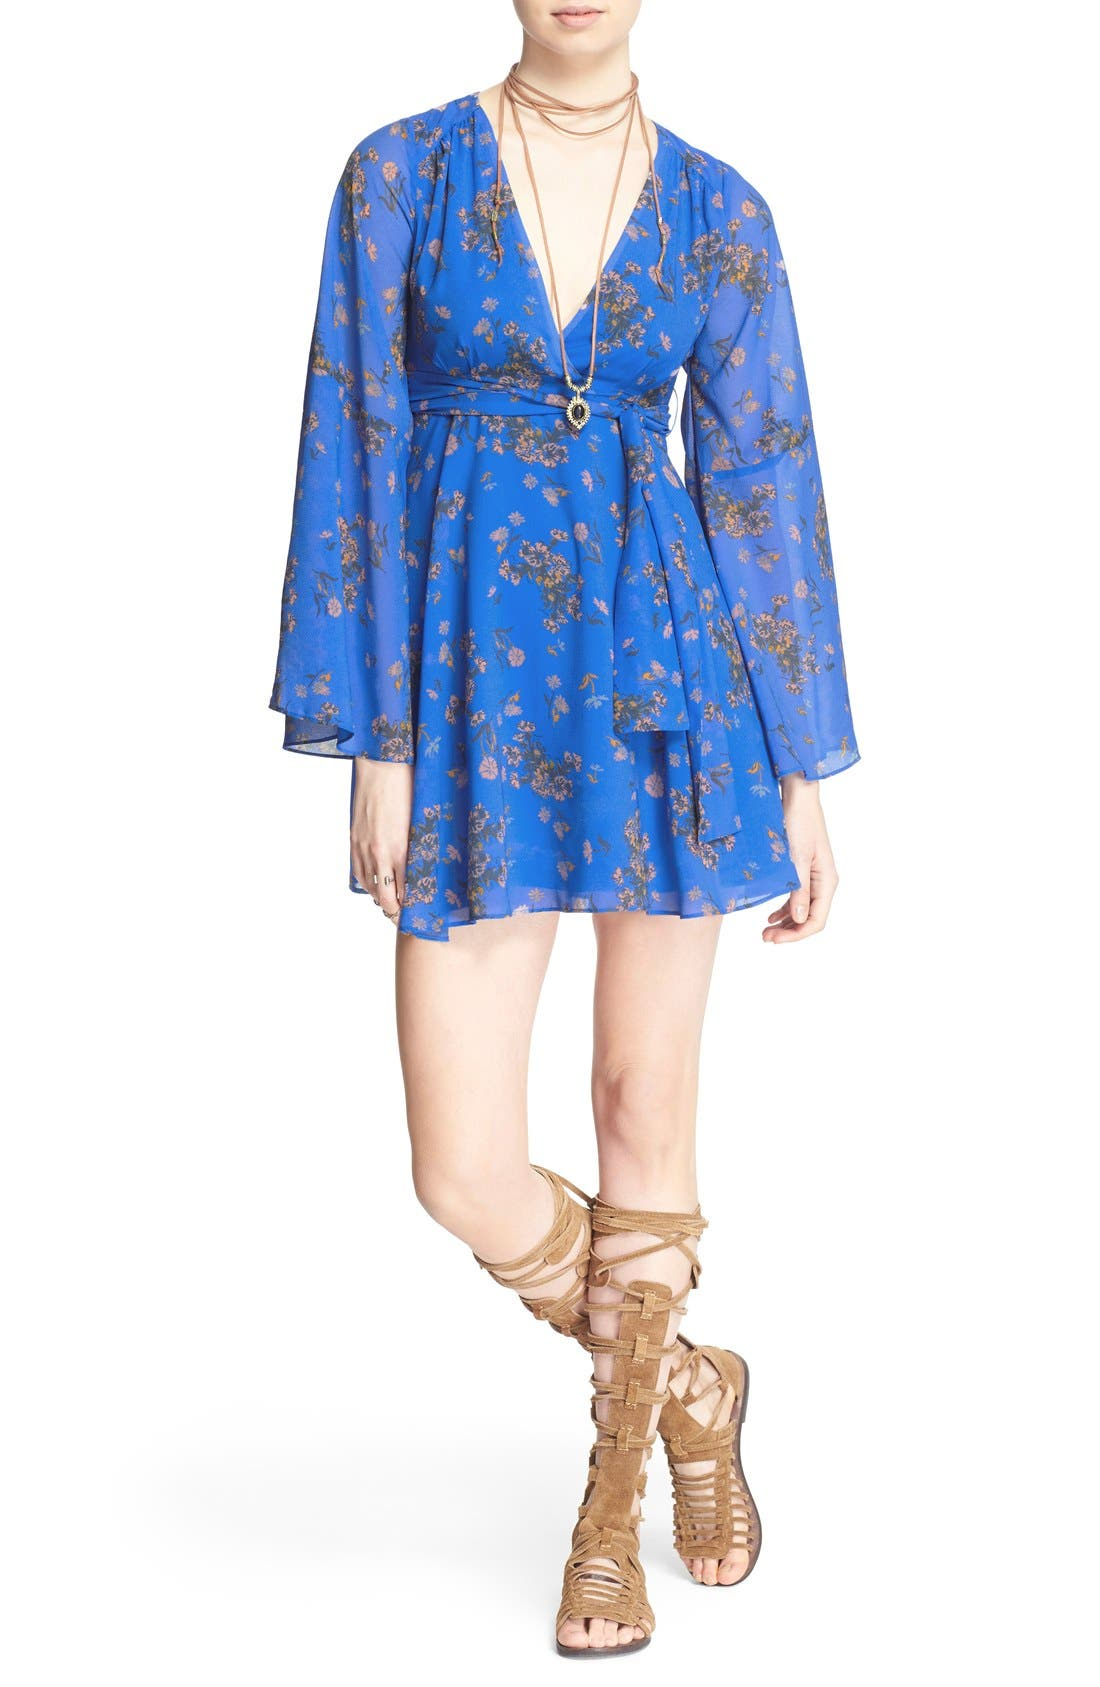 Alternate Image 1 Selected - Free People 'Lilou' Floral Print Minidress